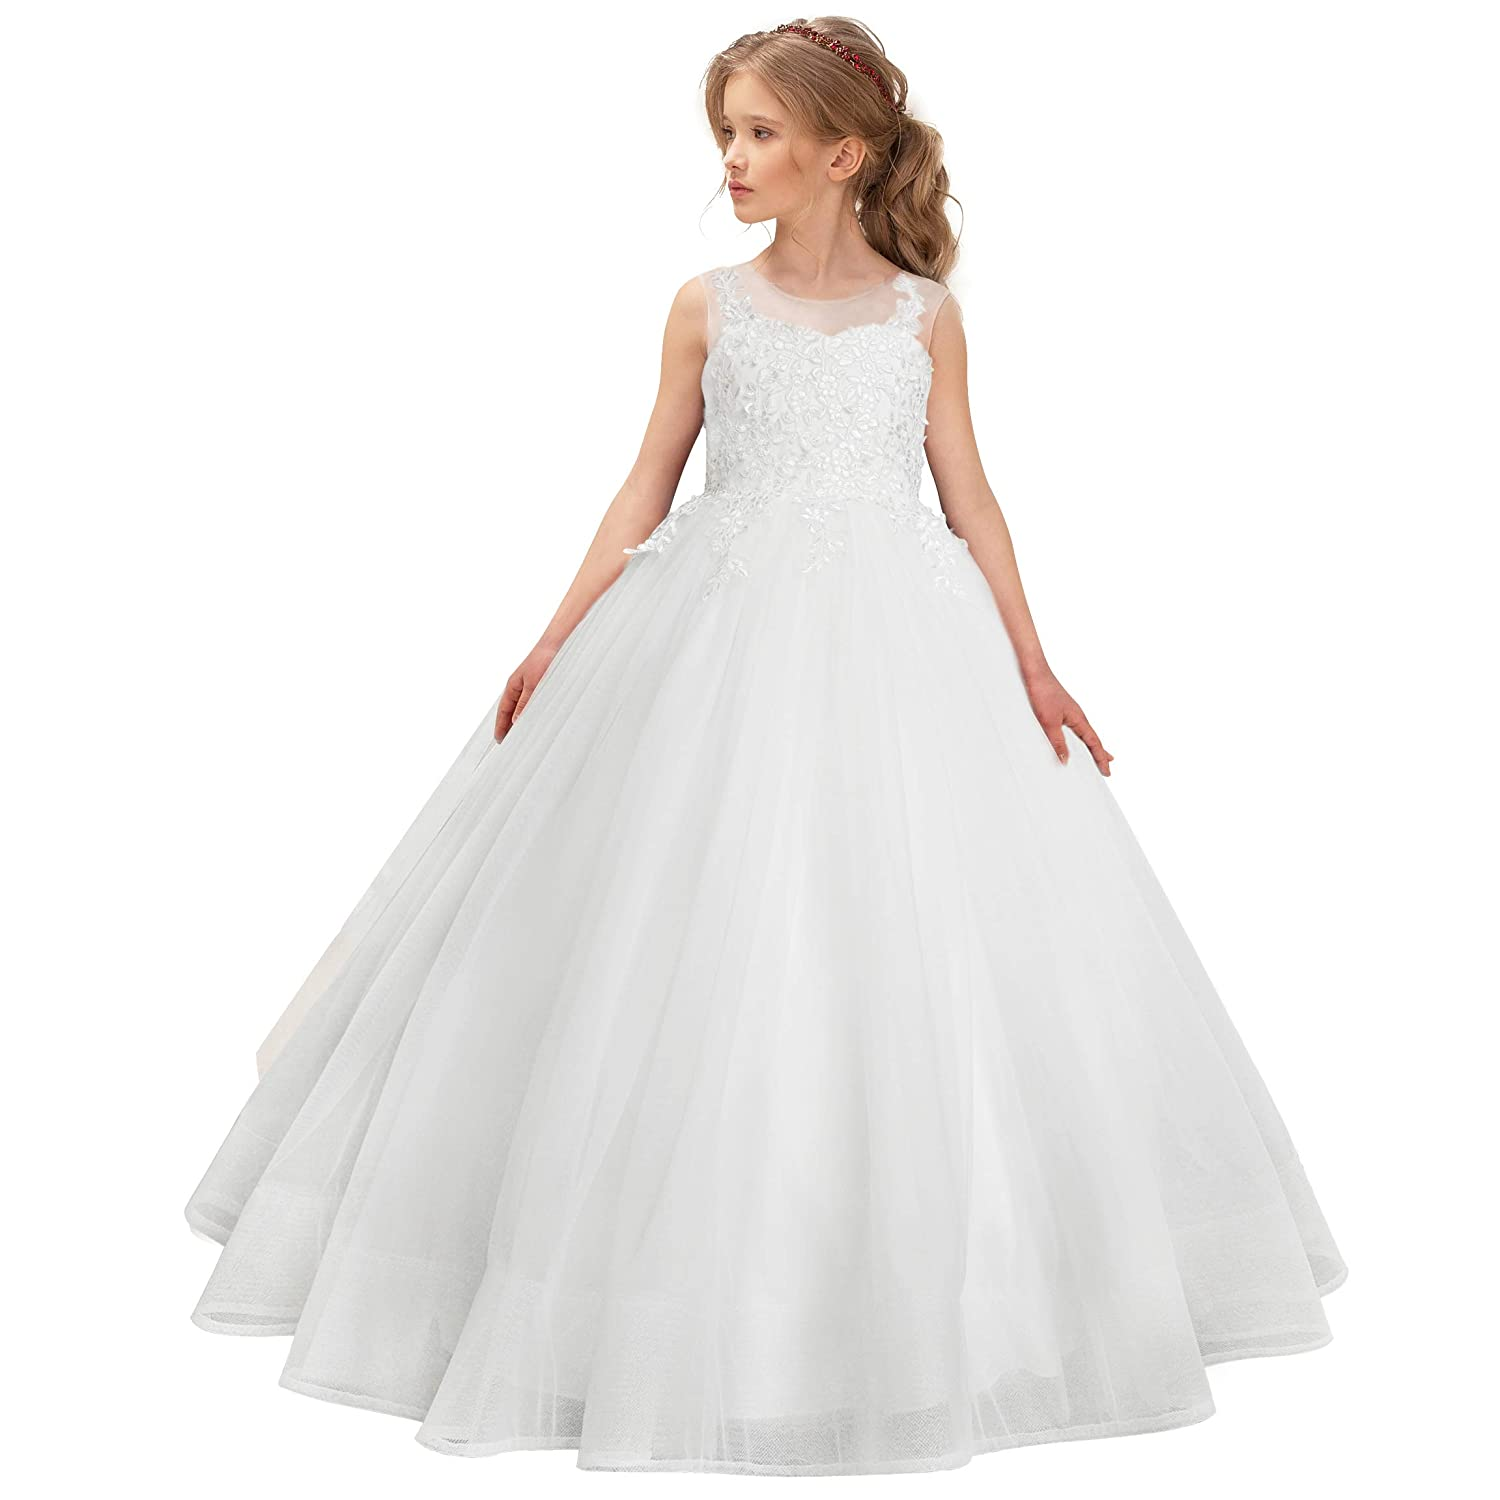 bc71f381da CQDY Flower Girl Lace Dresses Wedding Bridesmaid Flower Girl Dress Formal  Party Pageant Prom Ball Gown Christmas Birthday Gifts